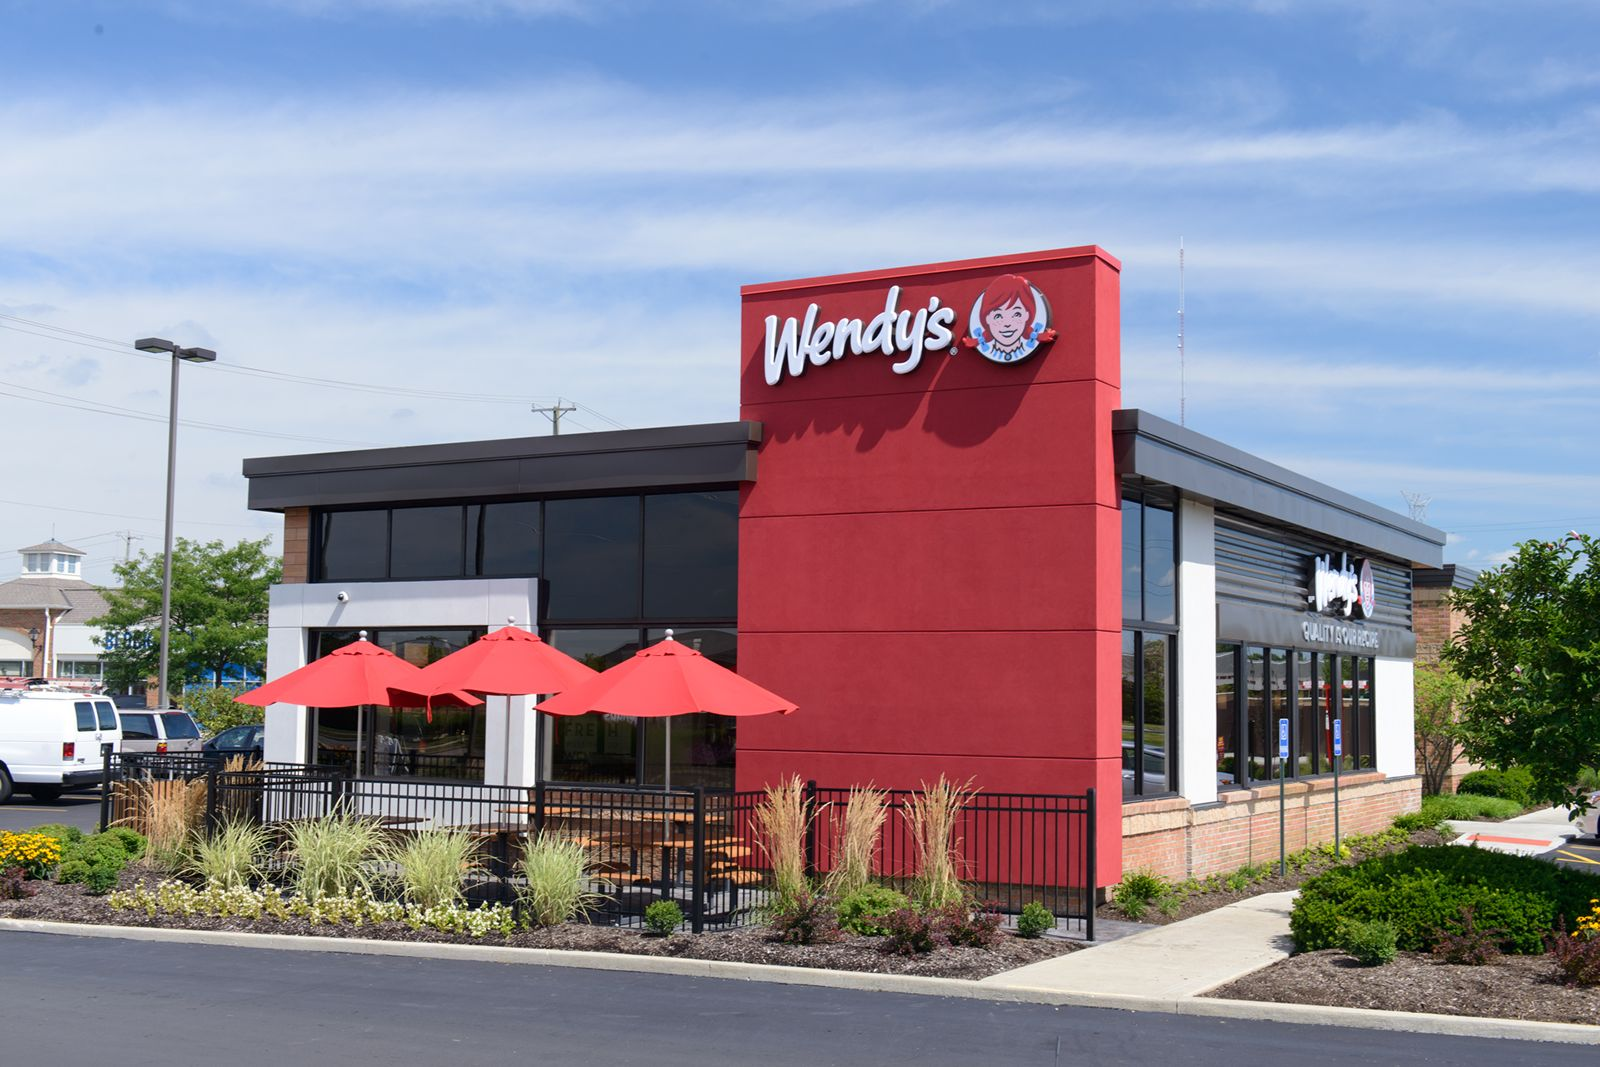 Delight Restaurant Group Announces Acquisition of 44 Wendy's Restaurants From the Wendy's Company